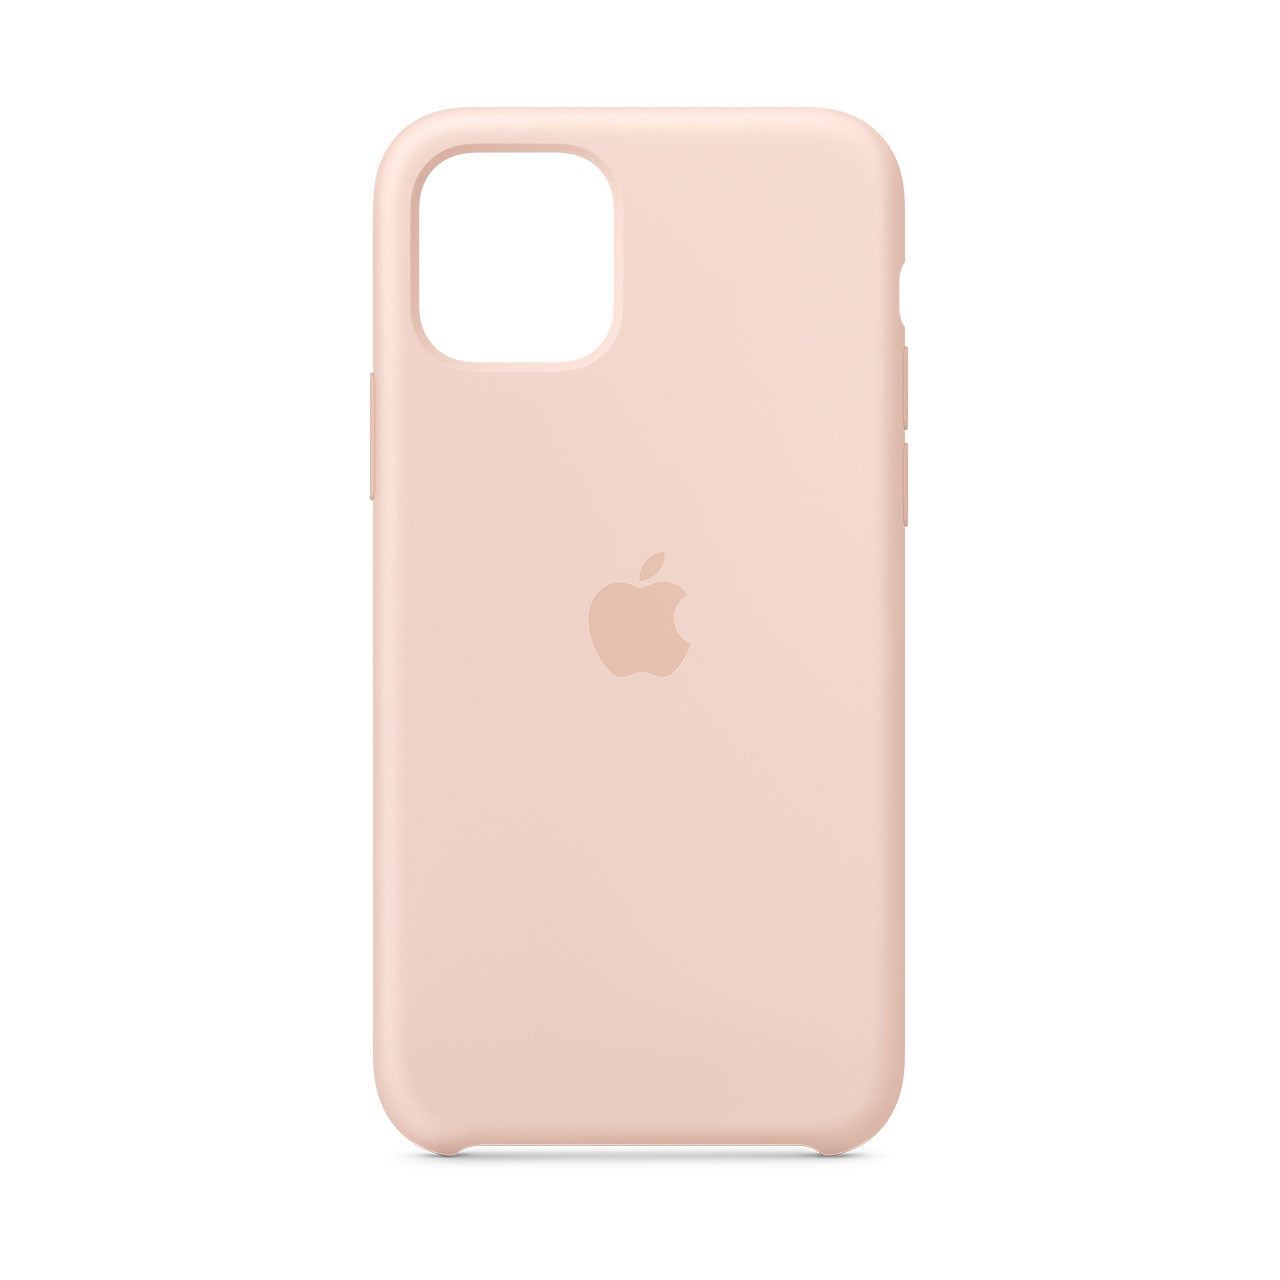 Silicone Case Pink Sand for iPhone 11 Pro